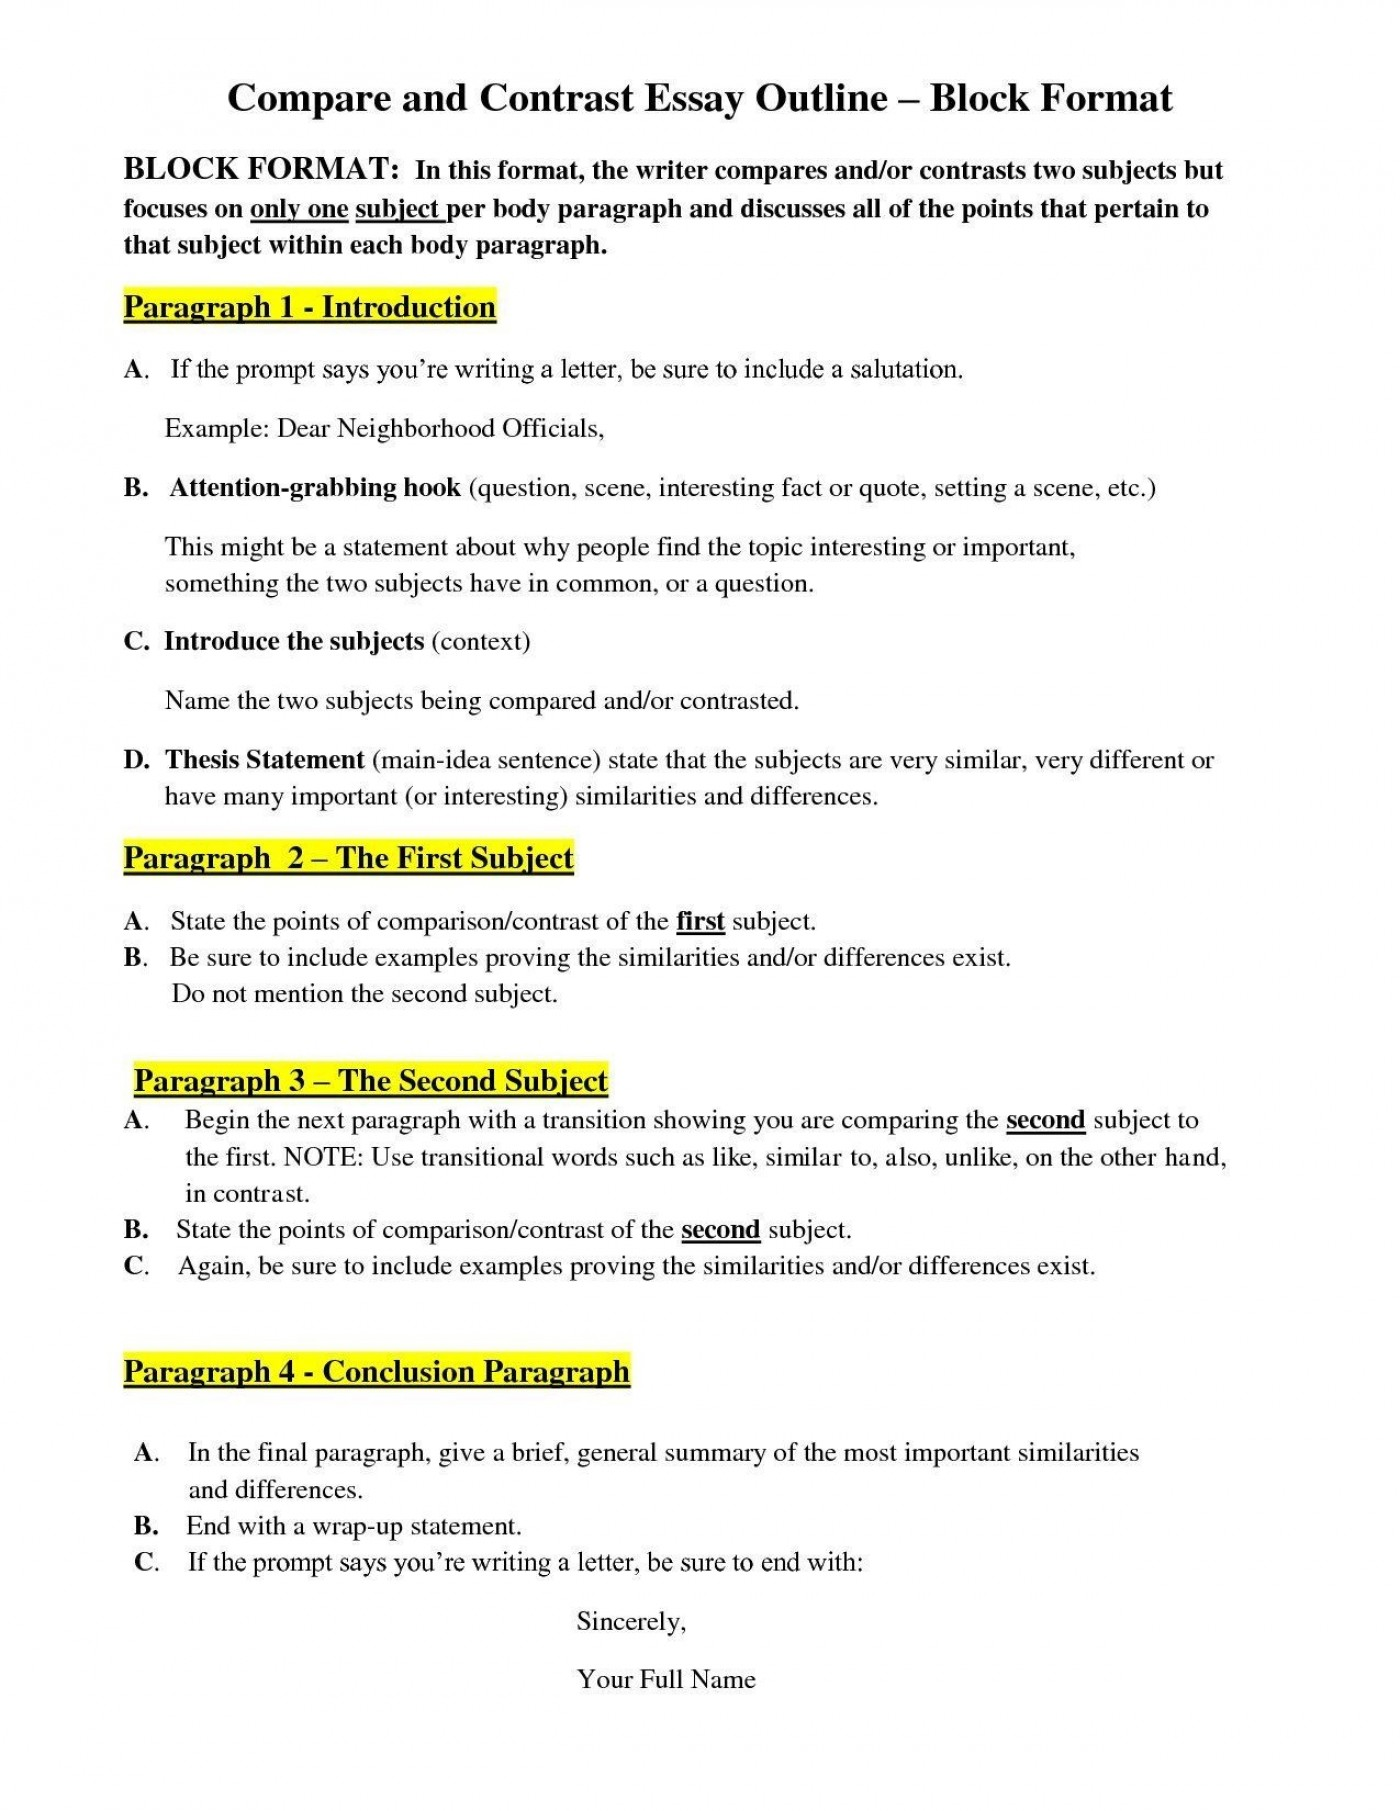 014 Essay Examplempare Andntrastmparison Best Examples Of Scenario In 6th Grade An Goo 3rd Food 5th Middle School Block Format Pdf High 4th Vs Striking Compare And Contrast Example Topics 9th 1400